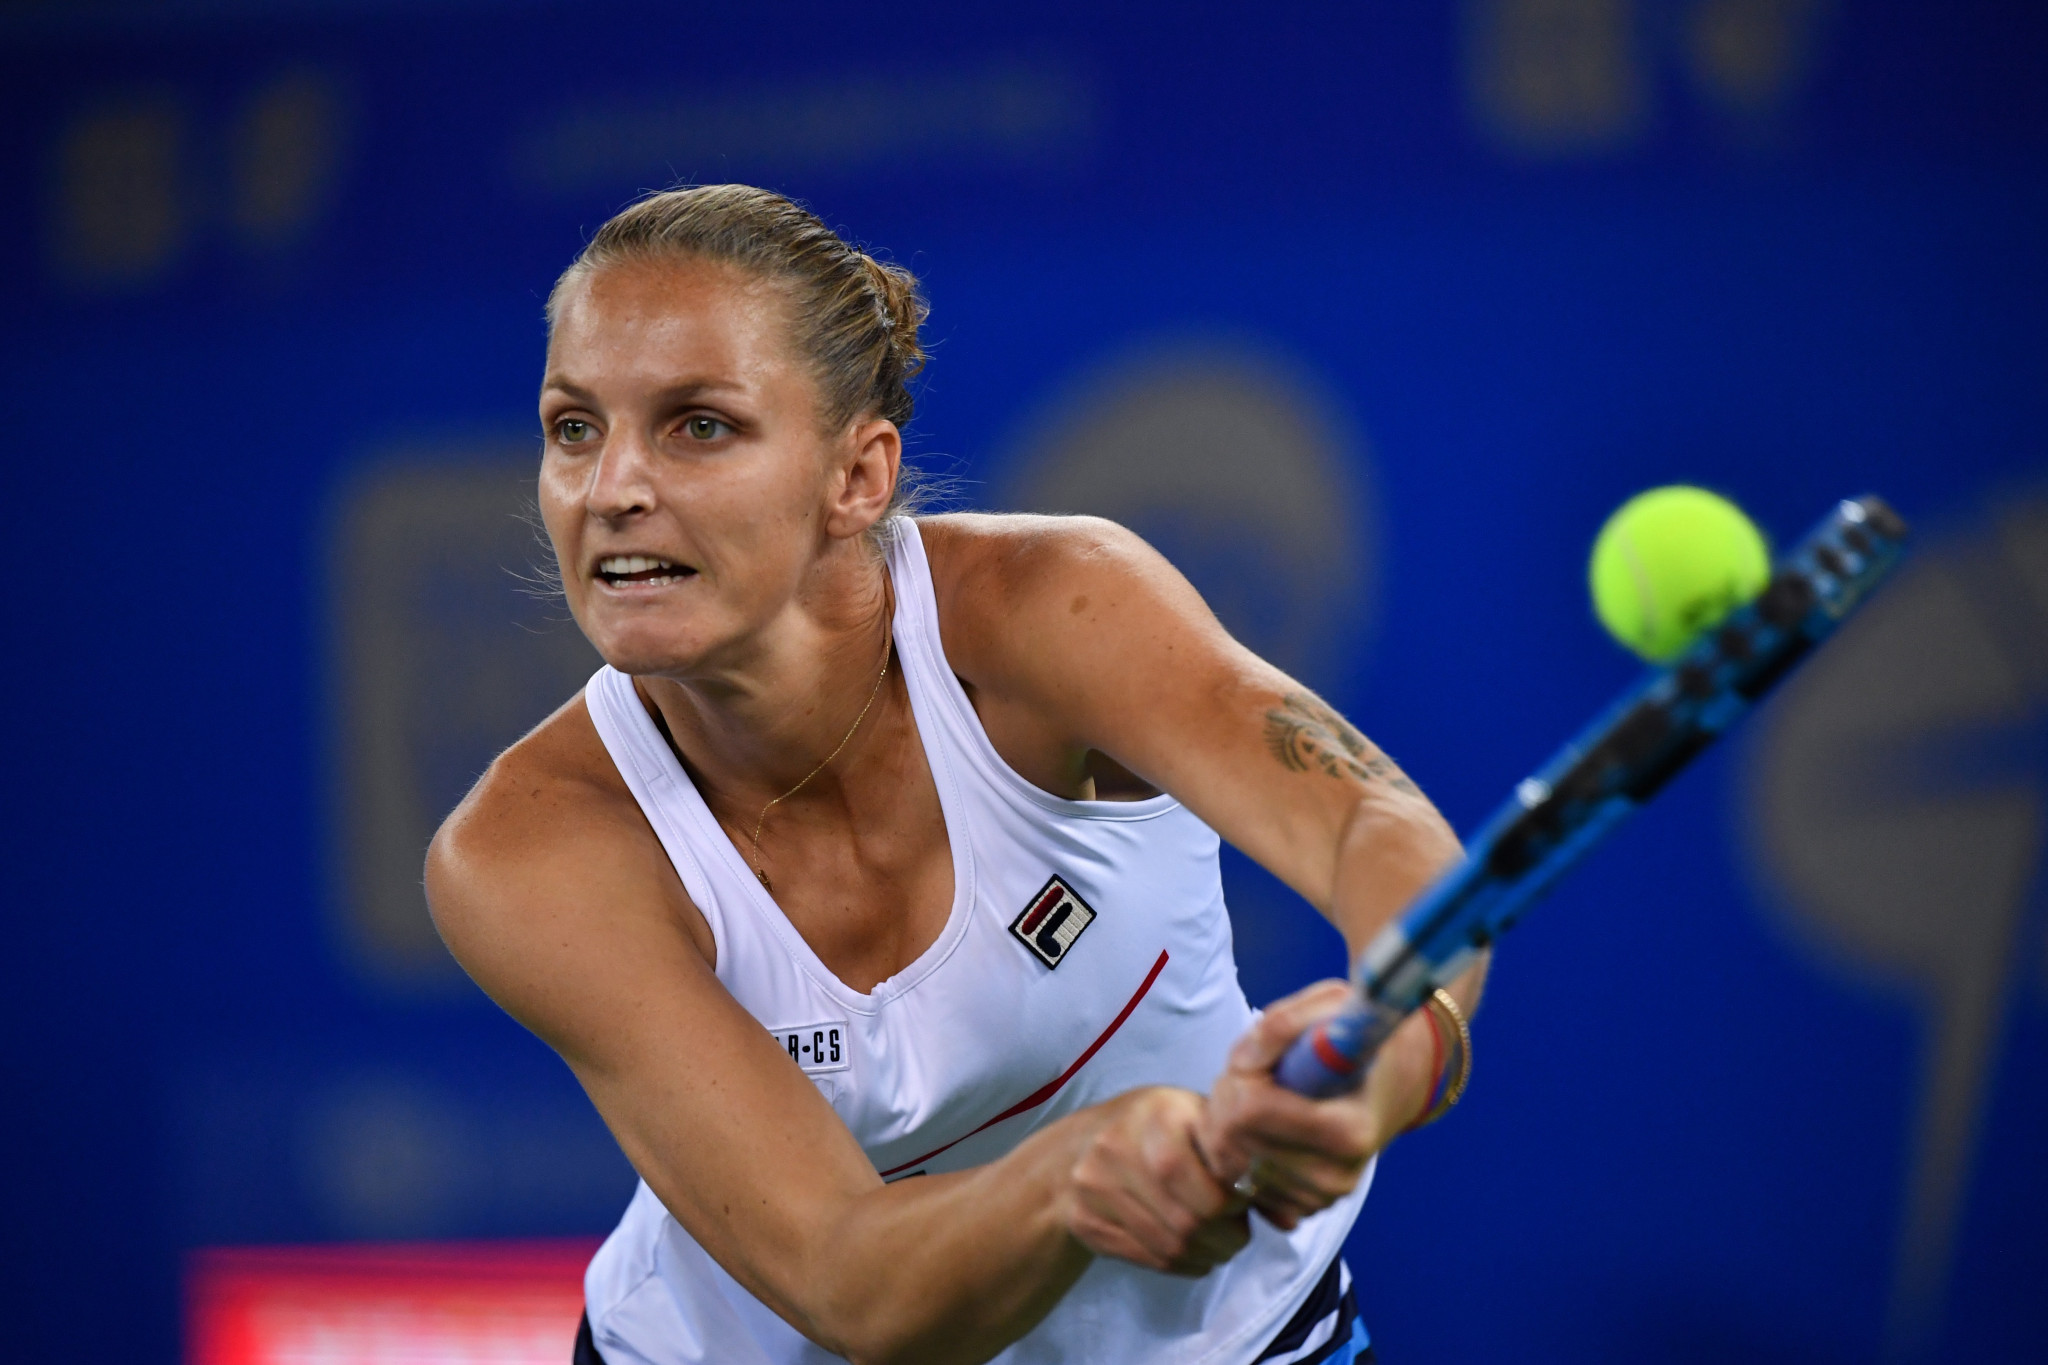 The Czech Republic's Karolína Plíšková suffered a straight sets defeat against Ukraine's Ukraine's Dayana Yastremska and missed the opportunity to claim the world number one position ©Getty Images